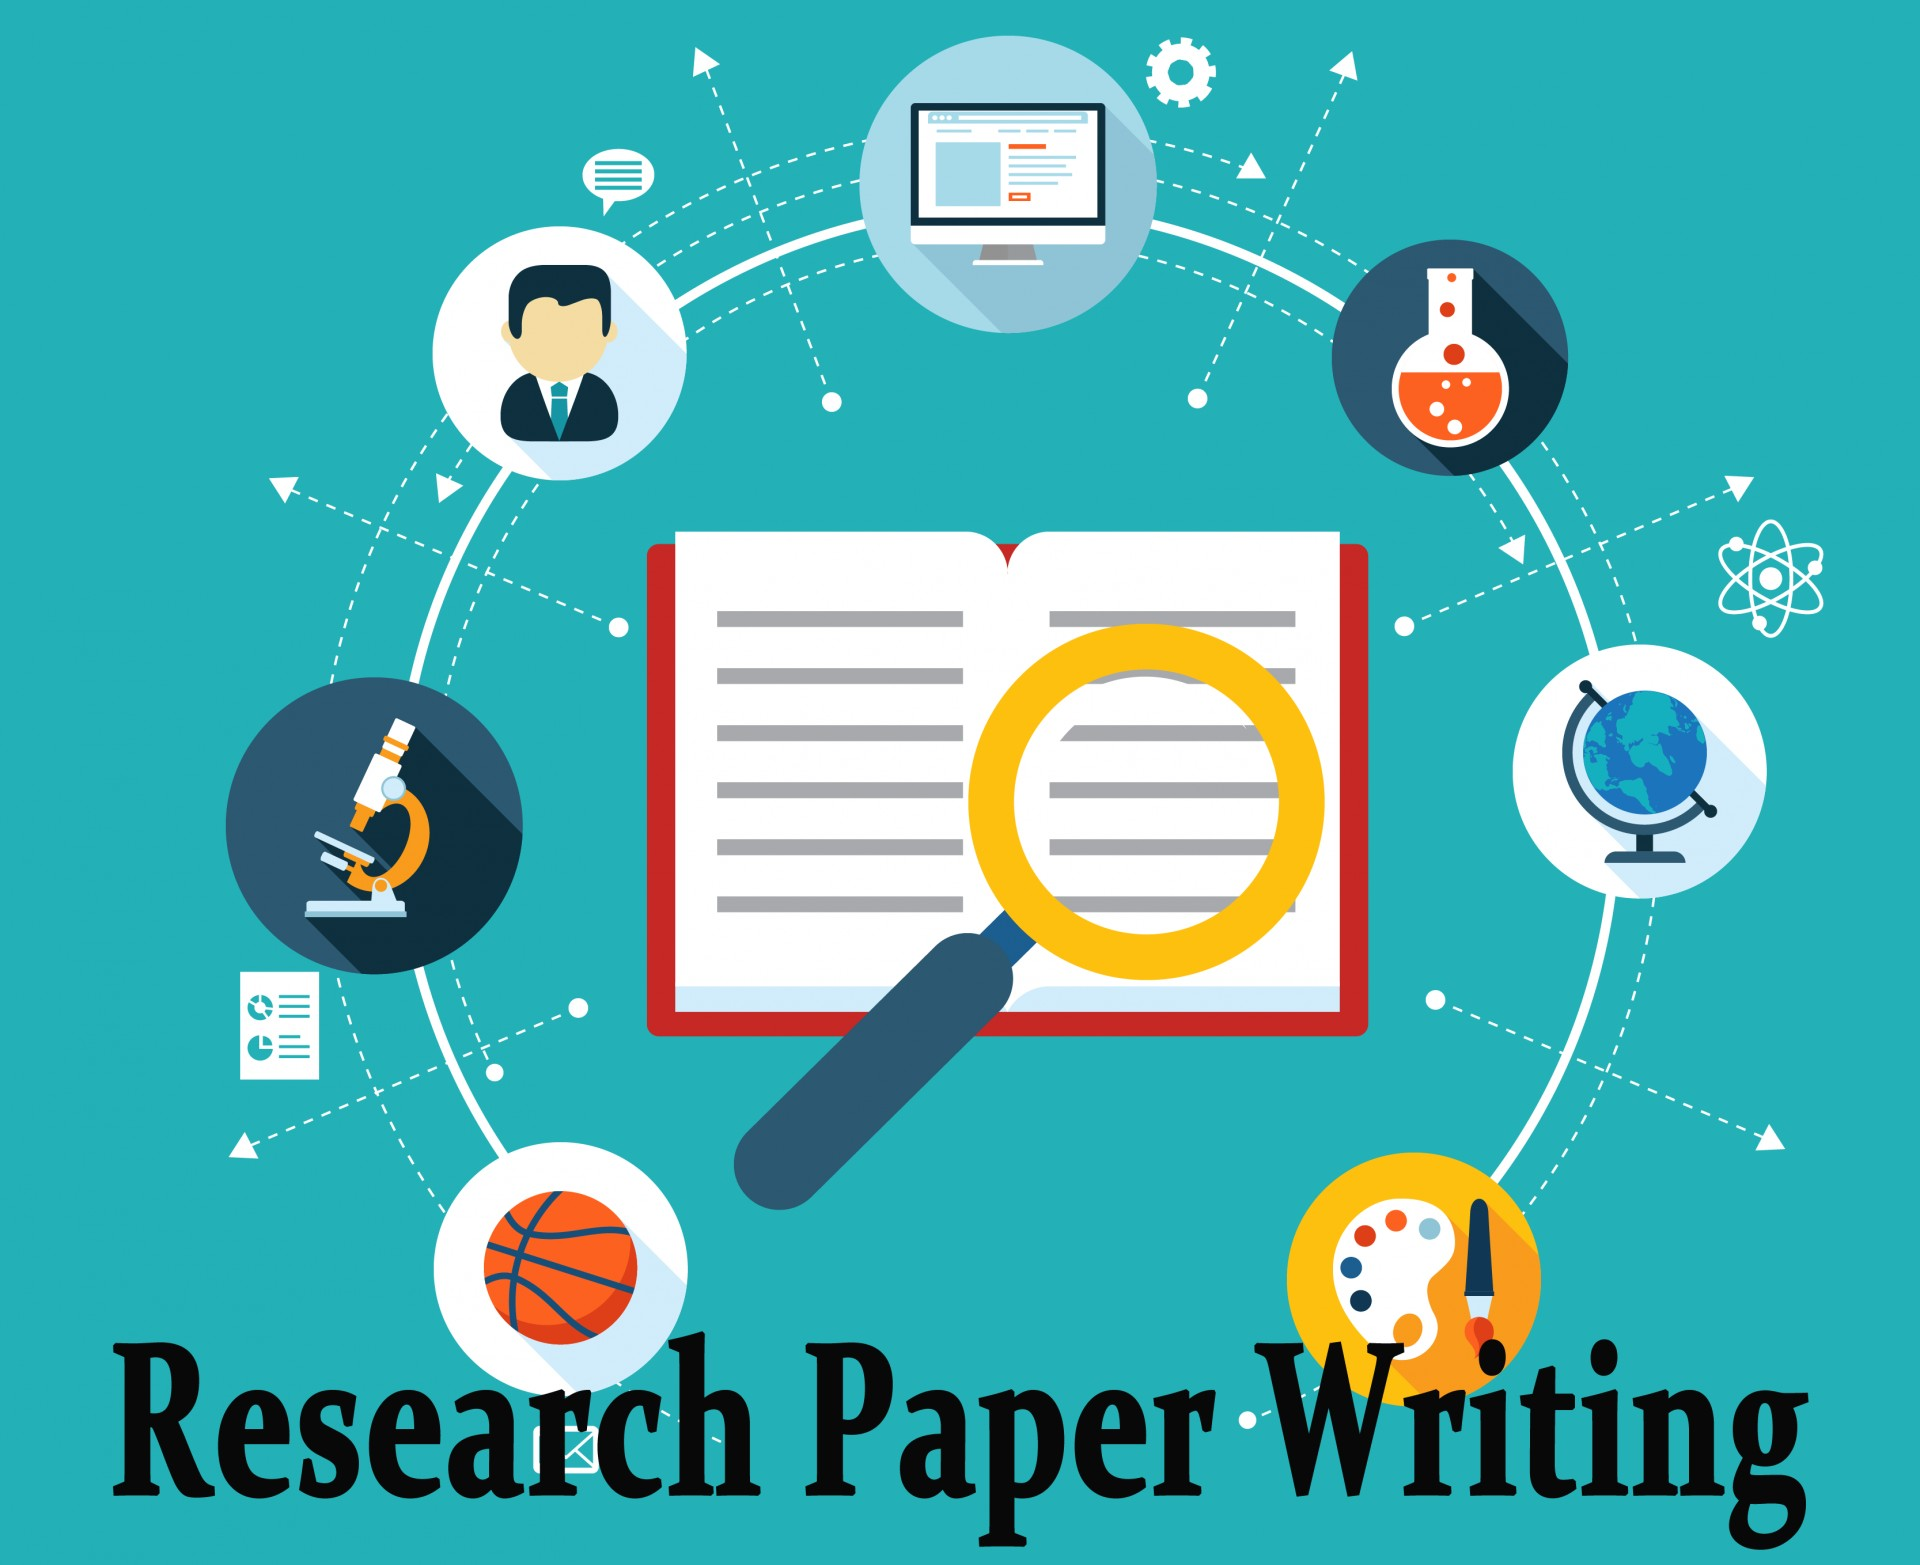 002 Research Paper Help Me Write 503 Effective Writing Wonderful A My Introduction For Free 1920